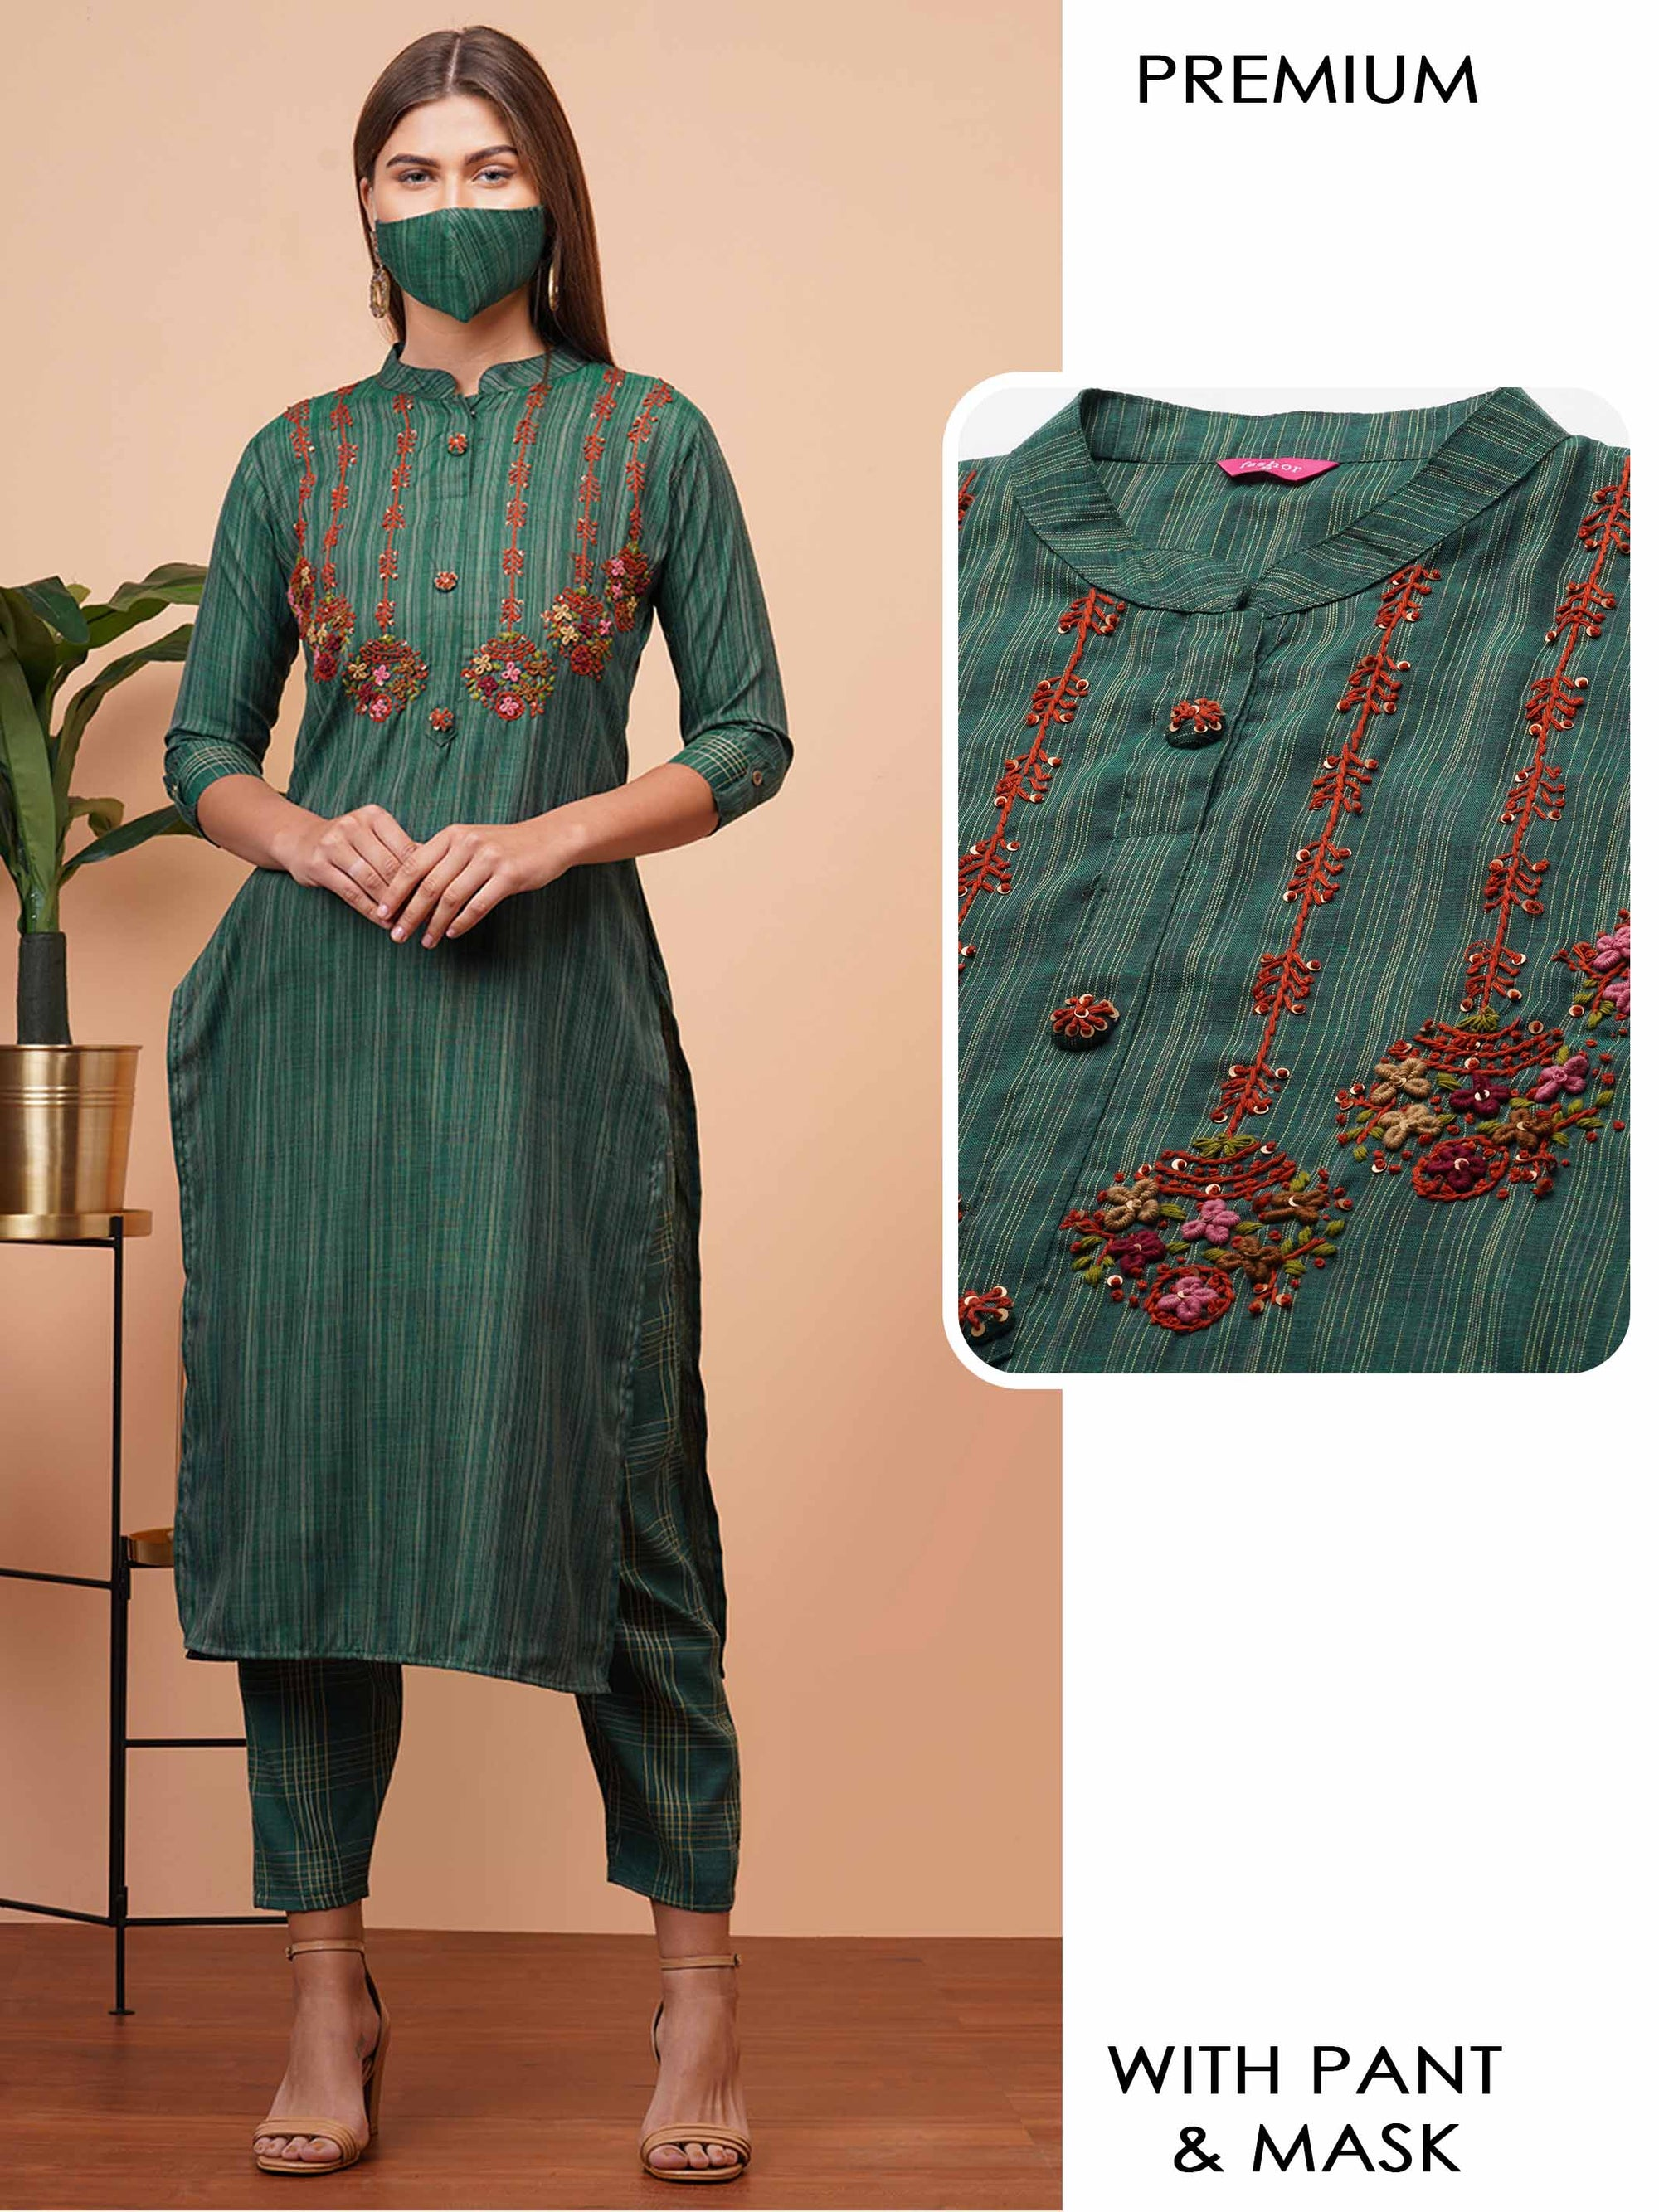 Woven Striped & Embroidered Kurta with Checkered Pant & 2-Ply Mask - Bottle Green